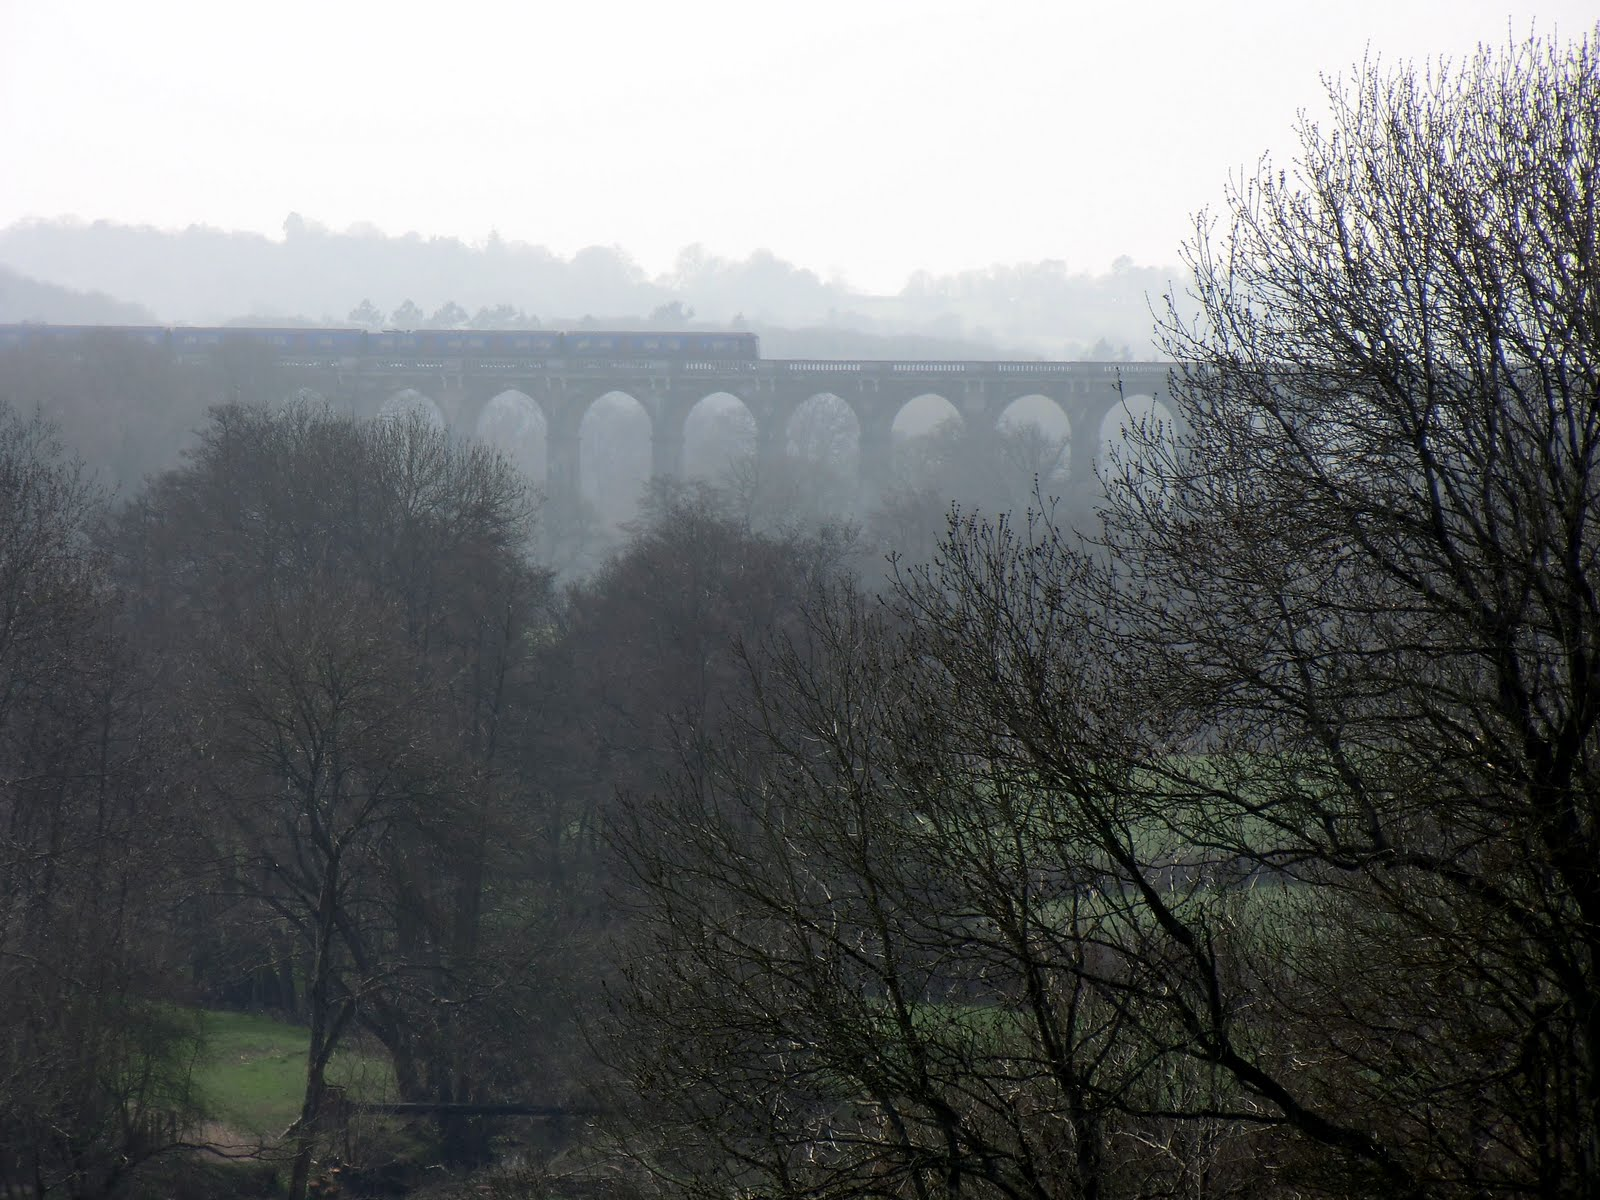 CIMG2085 Misty view of Ouse Valley viaduct